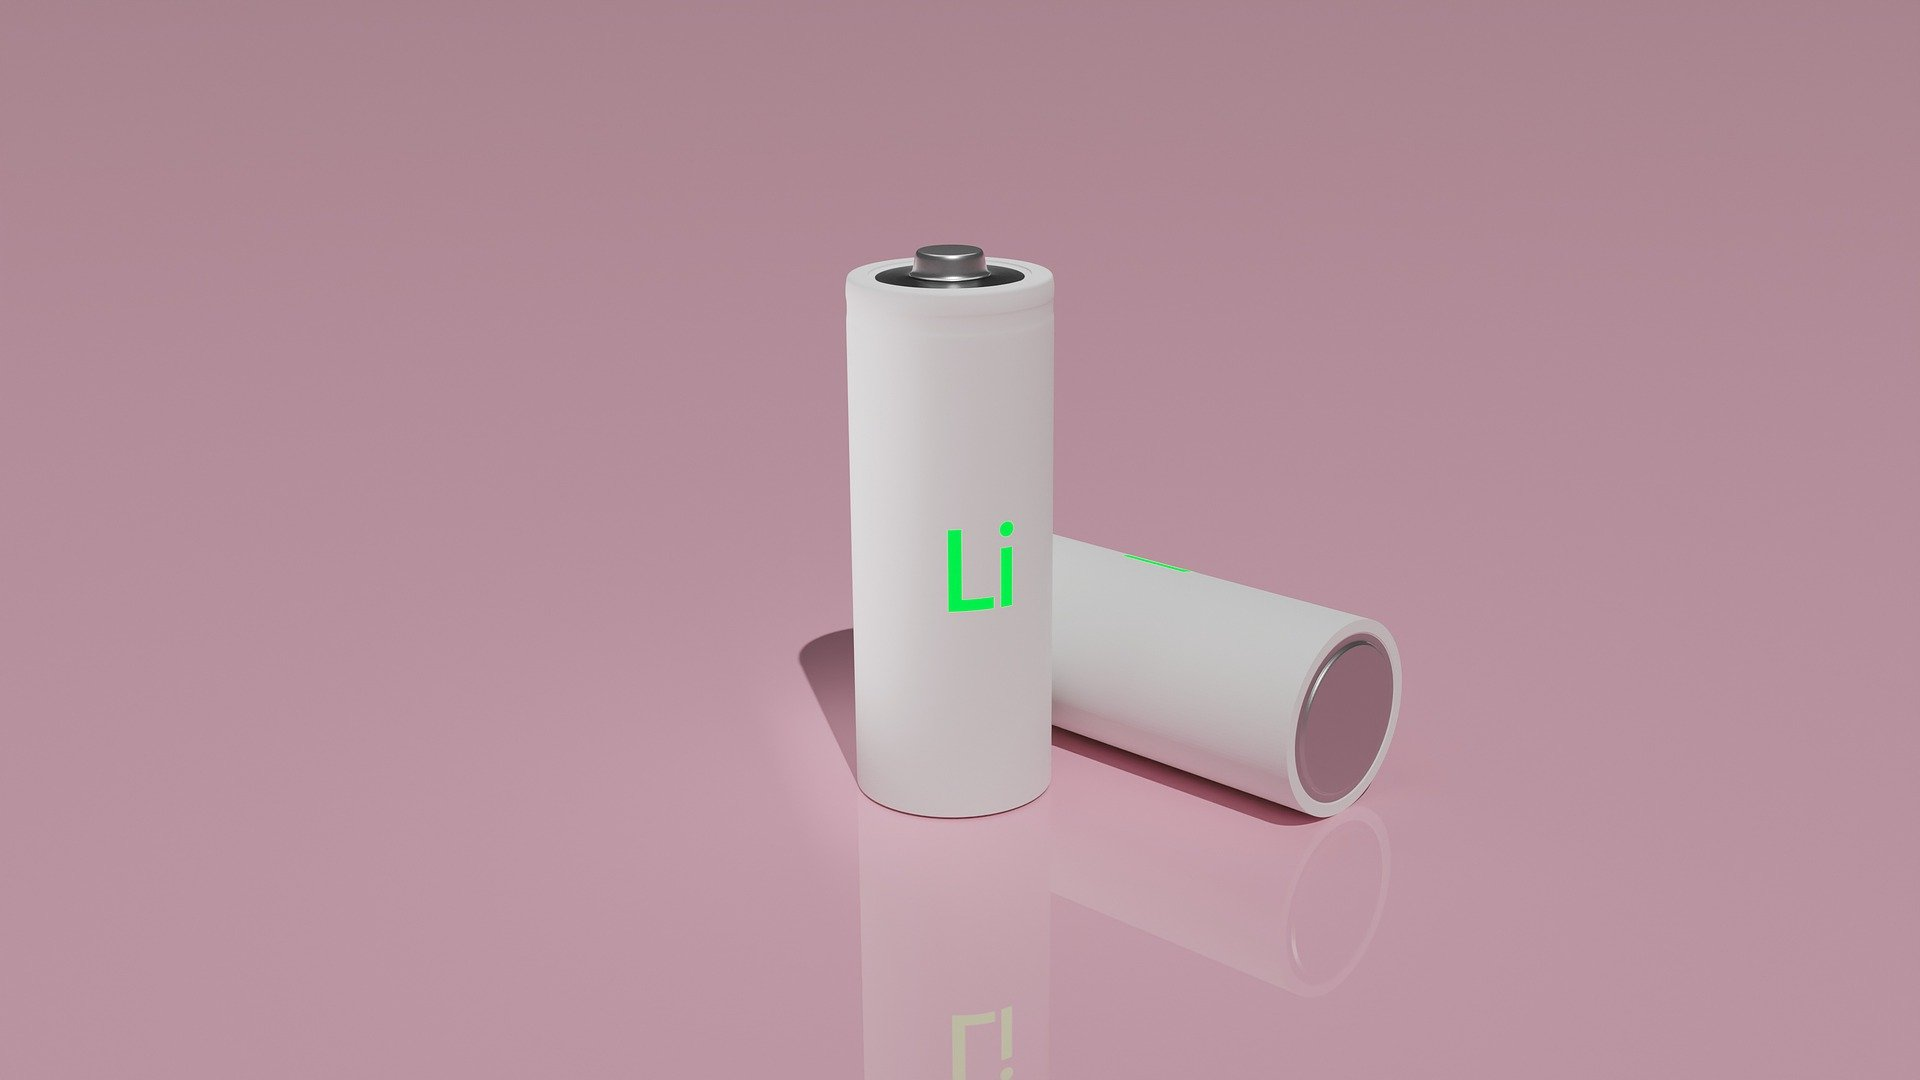 Changes for Lithium Battery Cells Under UL 1642 6th Edition